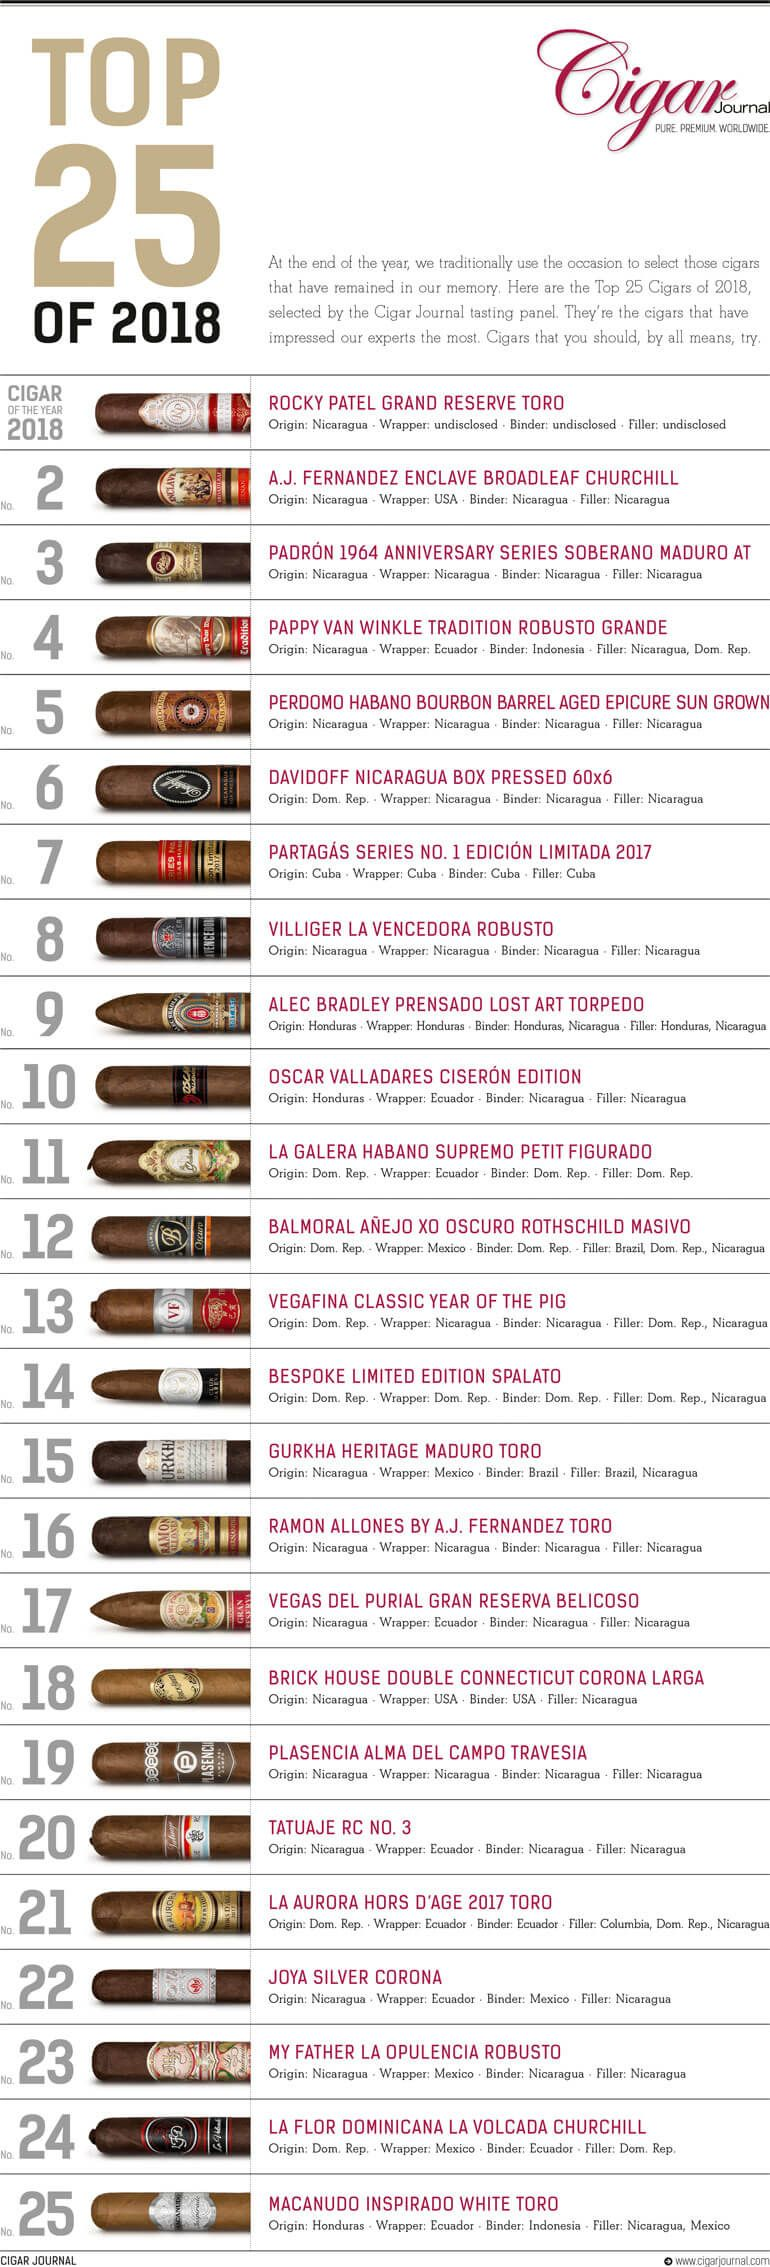 Top 25 Cigars of 2018: The Complete List